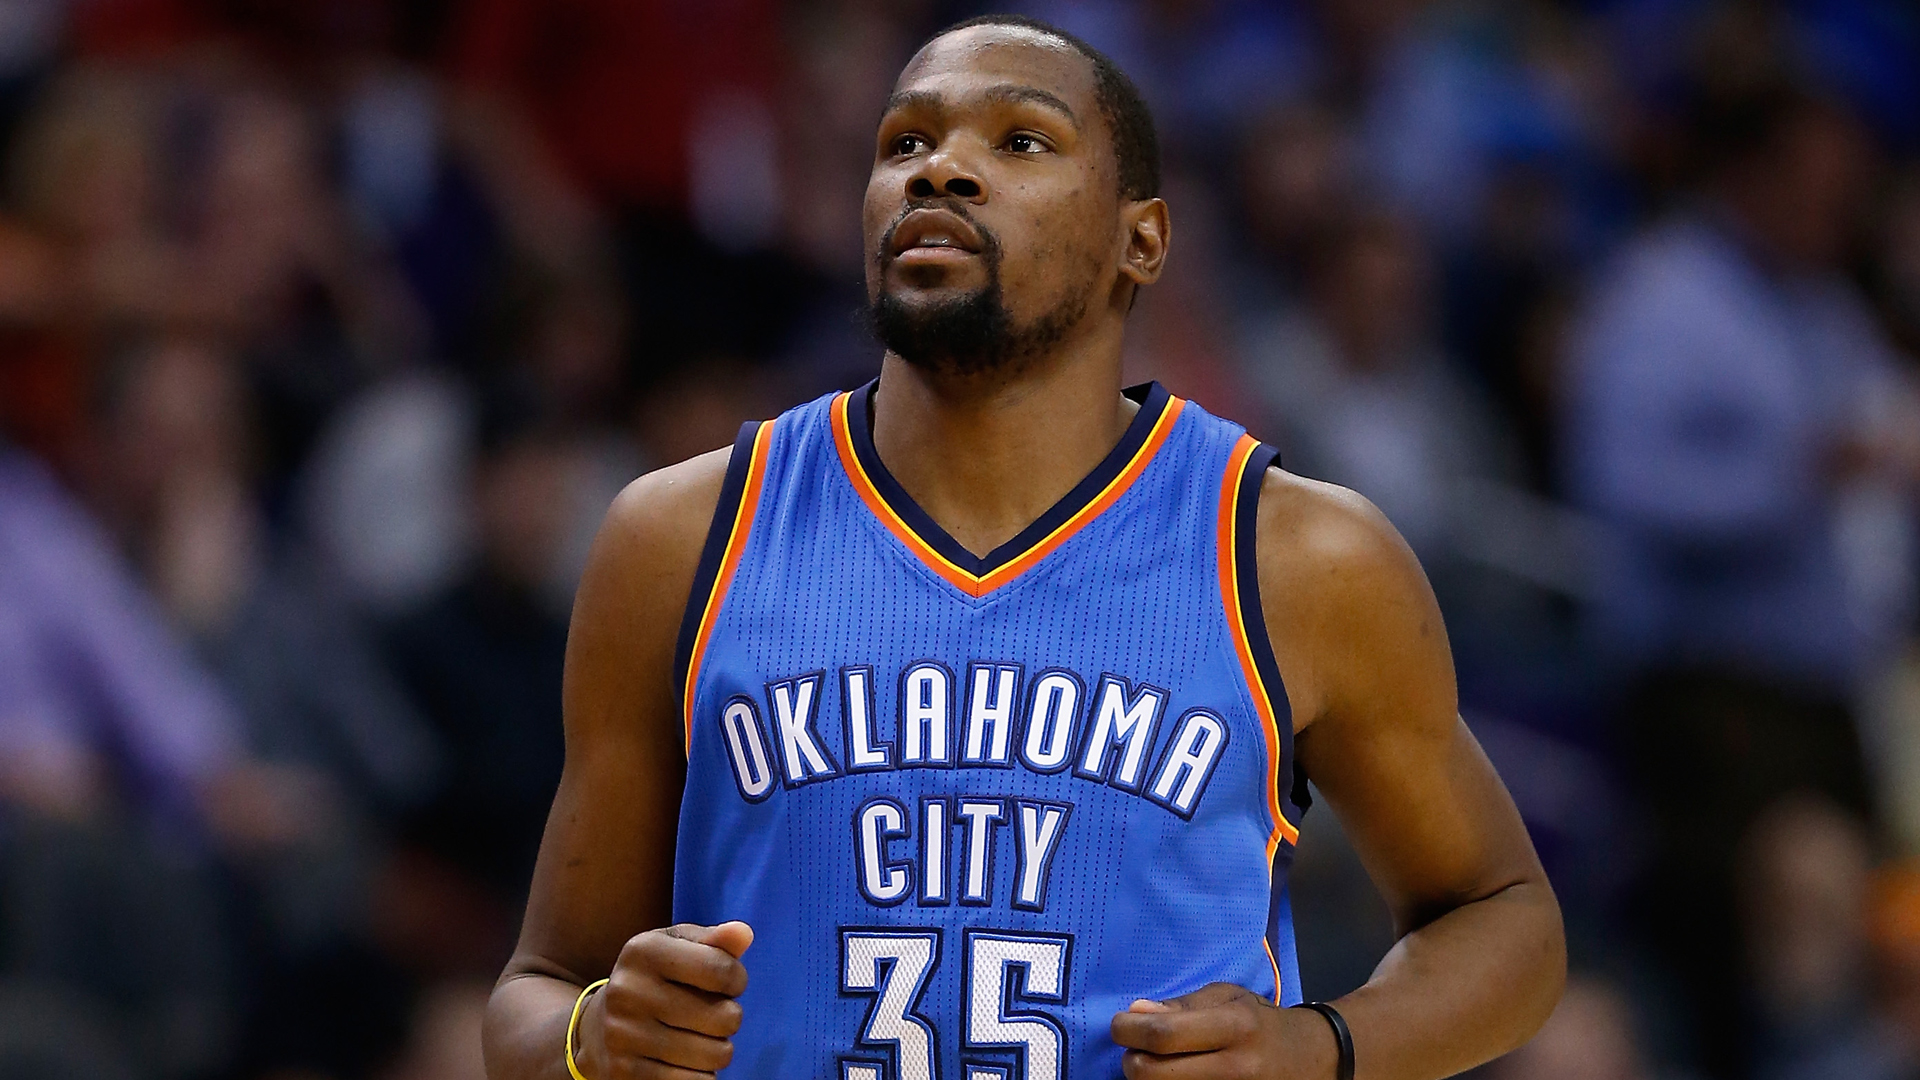 Kevindurant-cropped_1o0cts0mtelkz1g8bmtlt3fcu8